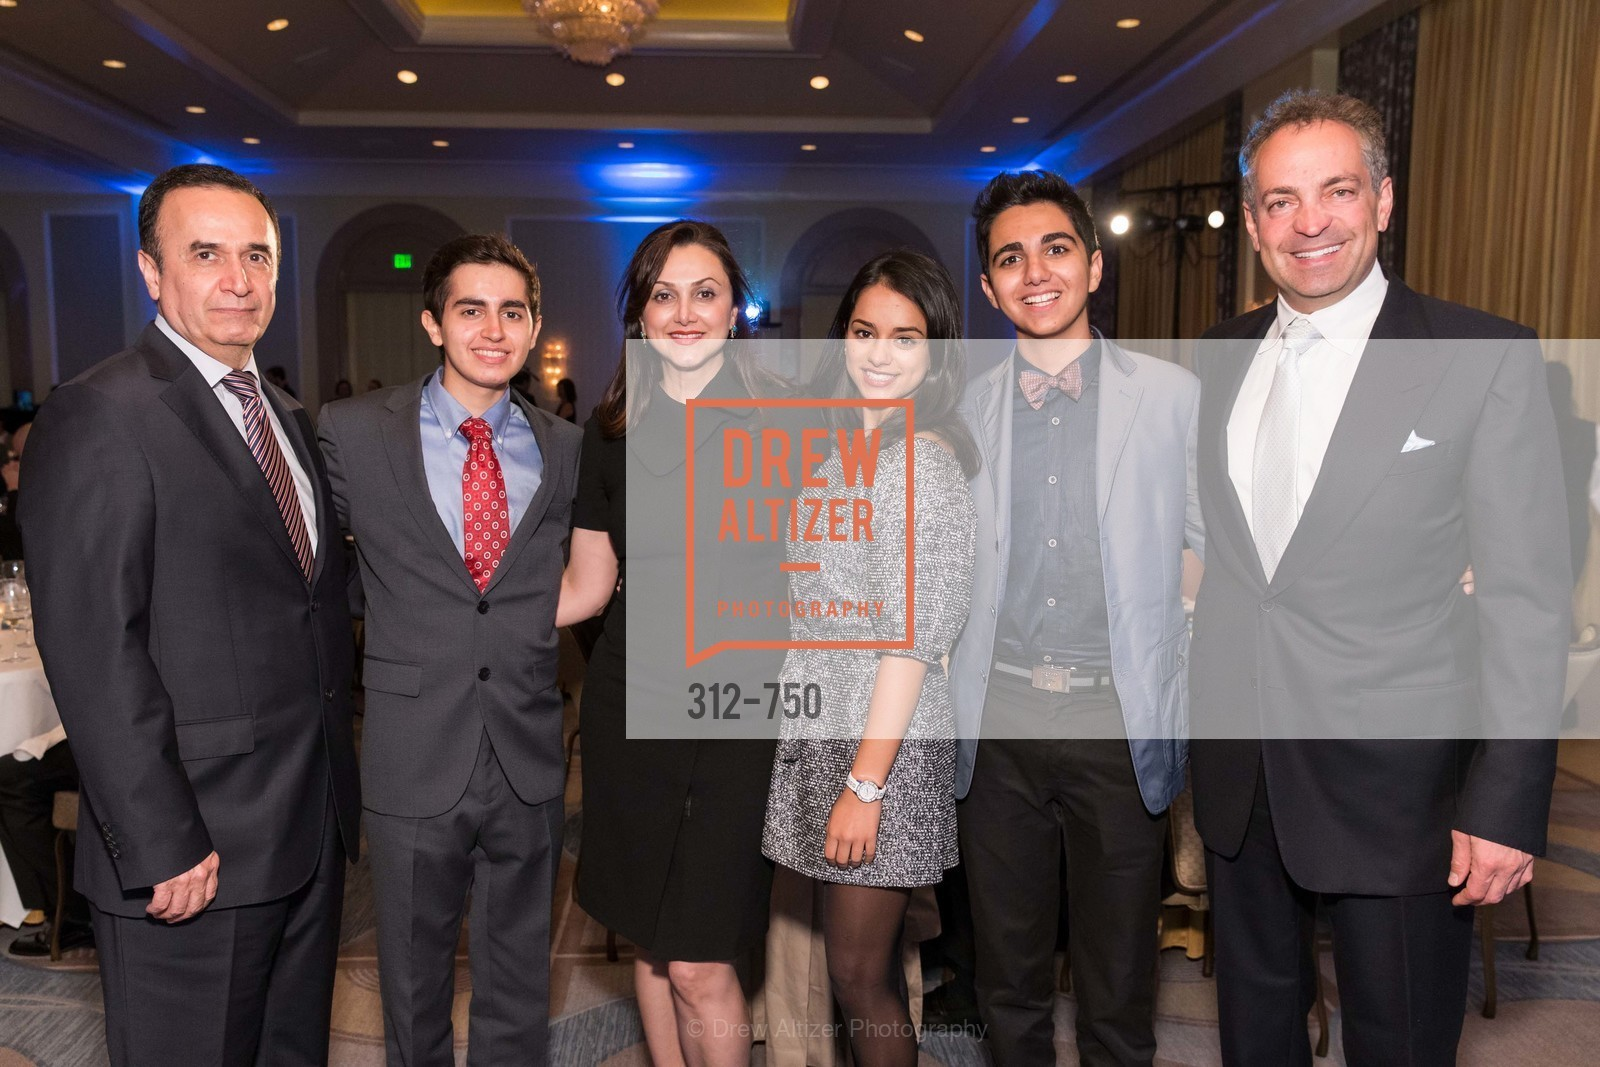 Bahman Daryabari, Ariya Daryabari, Bita Daryabari, Misha Kordestani, Milan Kordestani, Reza Malek, WORLD AFFAIRS COUNCIL Awards Dinner, US, May 27th, 2015,Drew Altizer, Drew Altizer Photography, full-service agency, private events, San Francisco photographer, photographer california